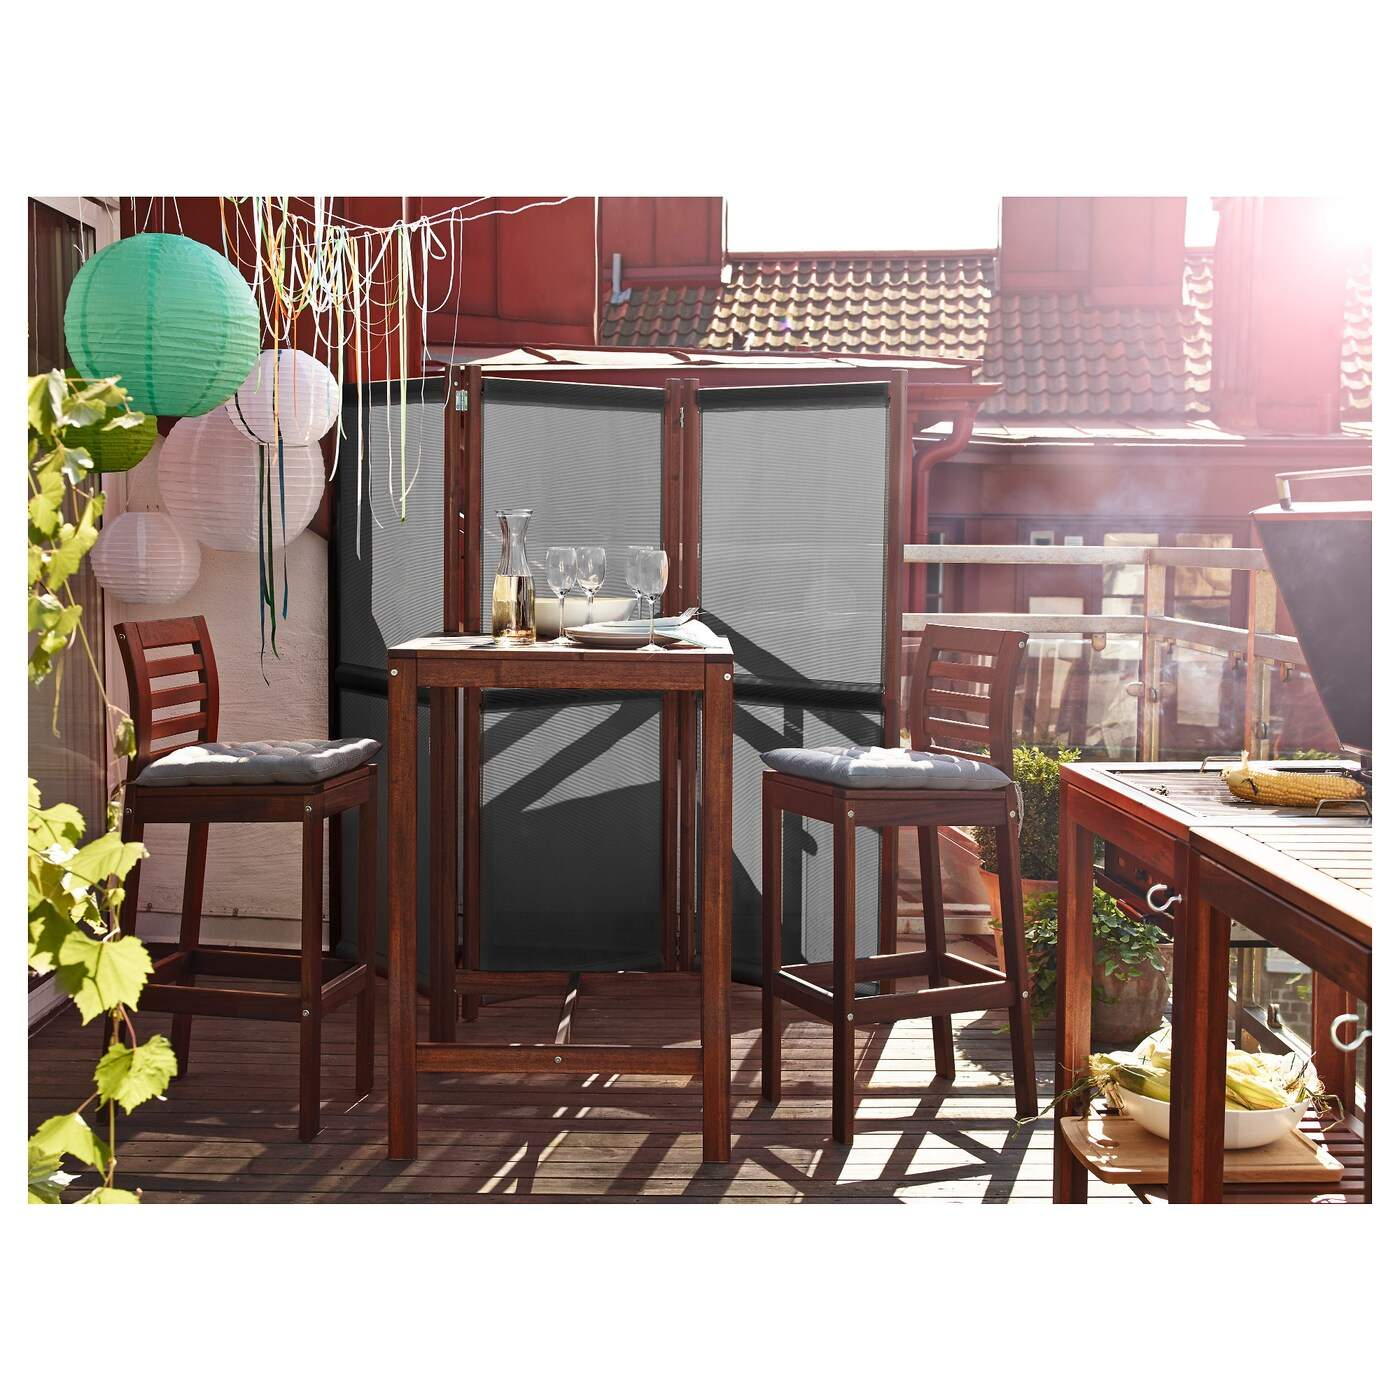 slaettoe privacy screen outdoor black brown stained PH S5 JPG